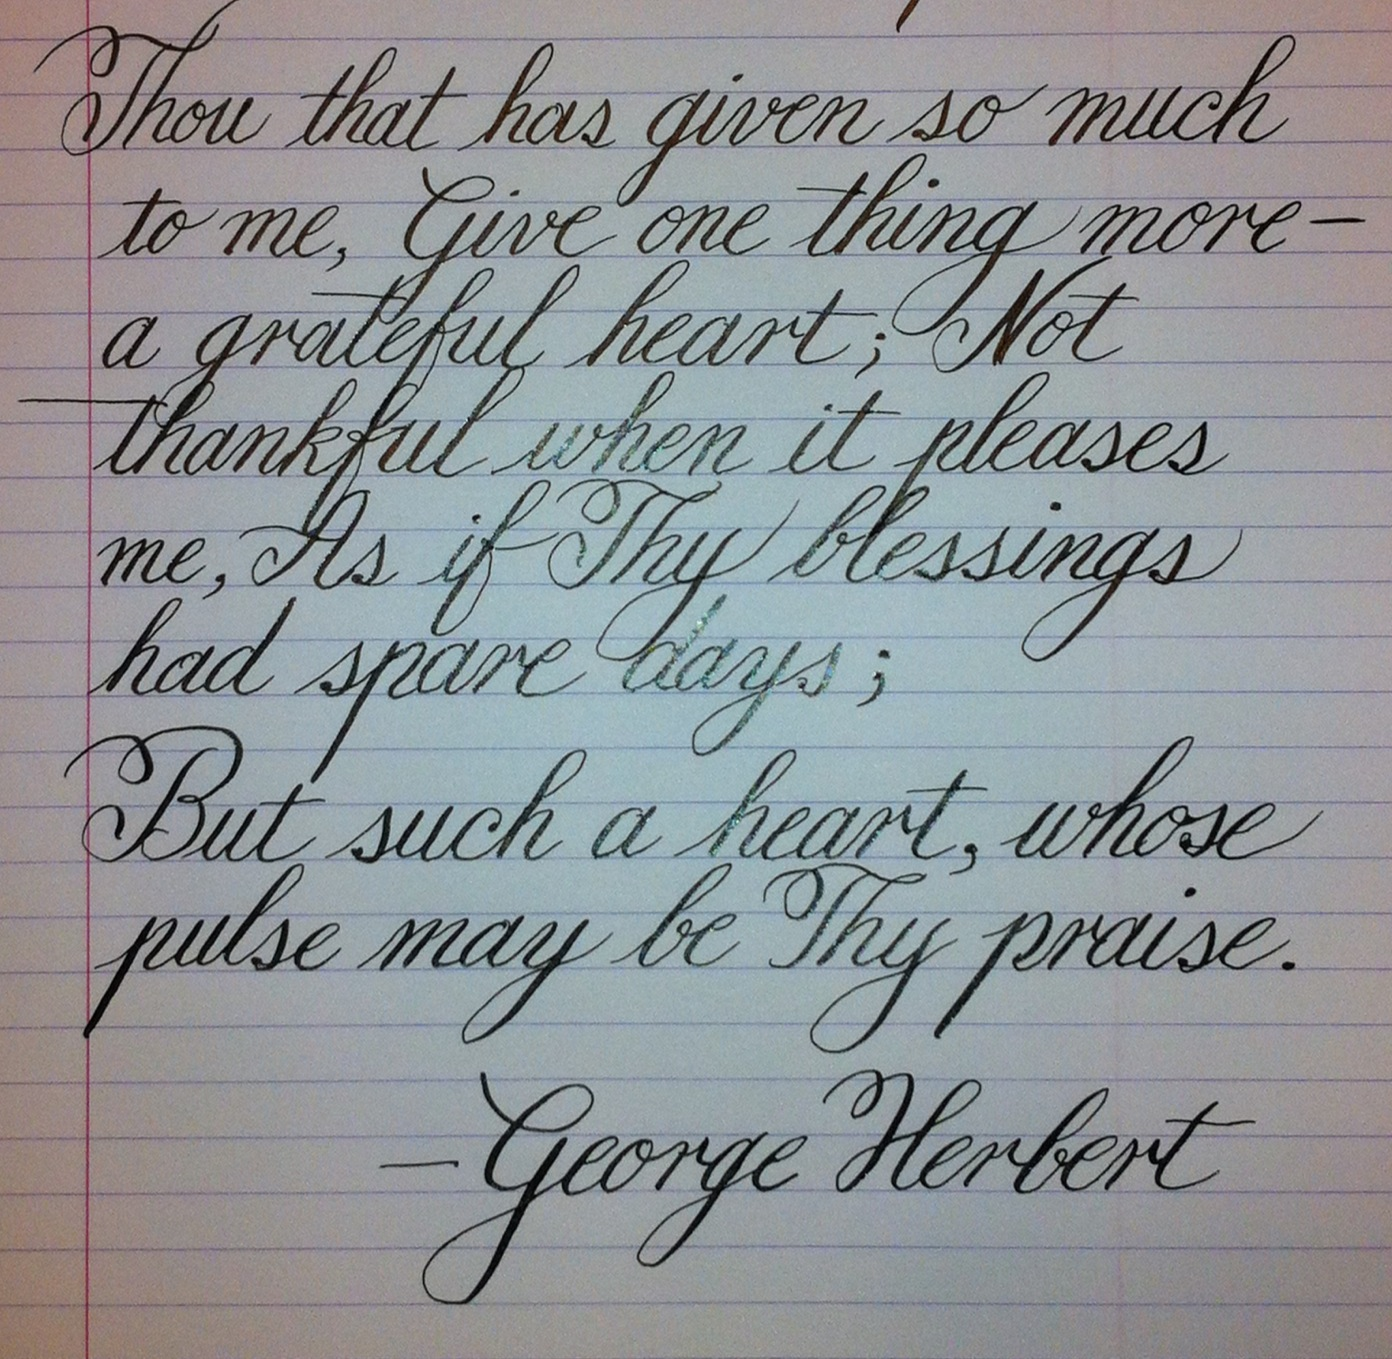 Writing by hand george herbert on thanksgiving Handwriting calligraphy